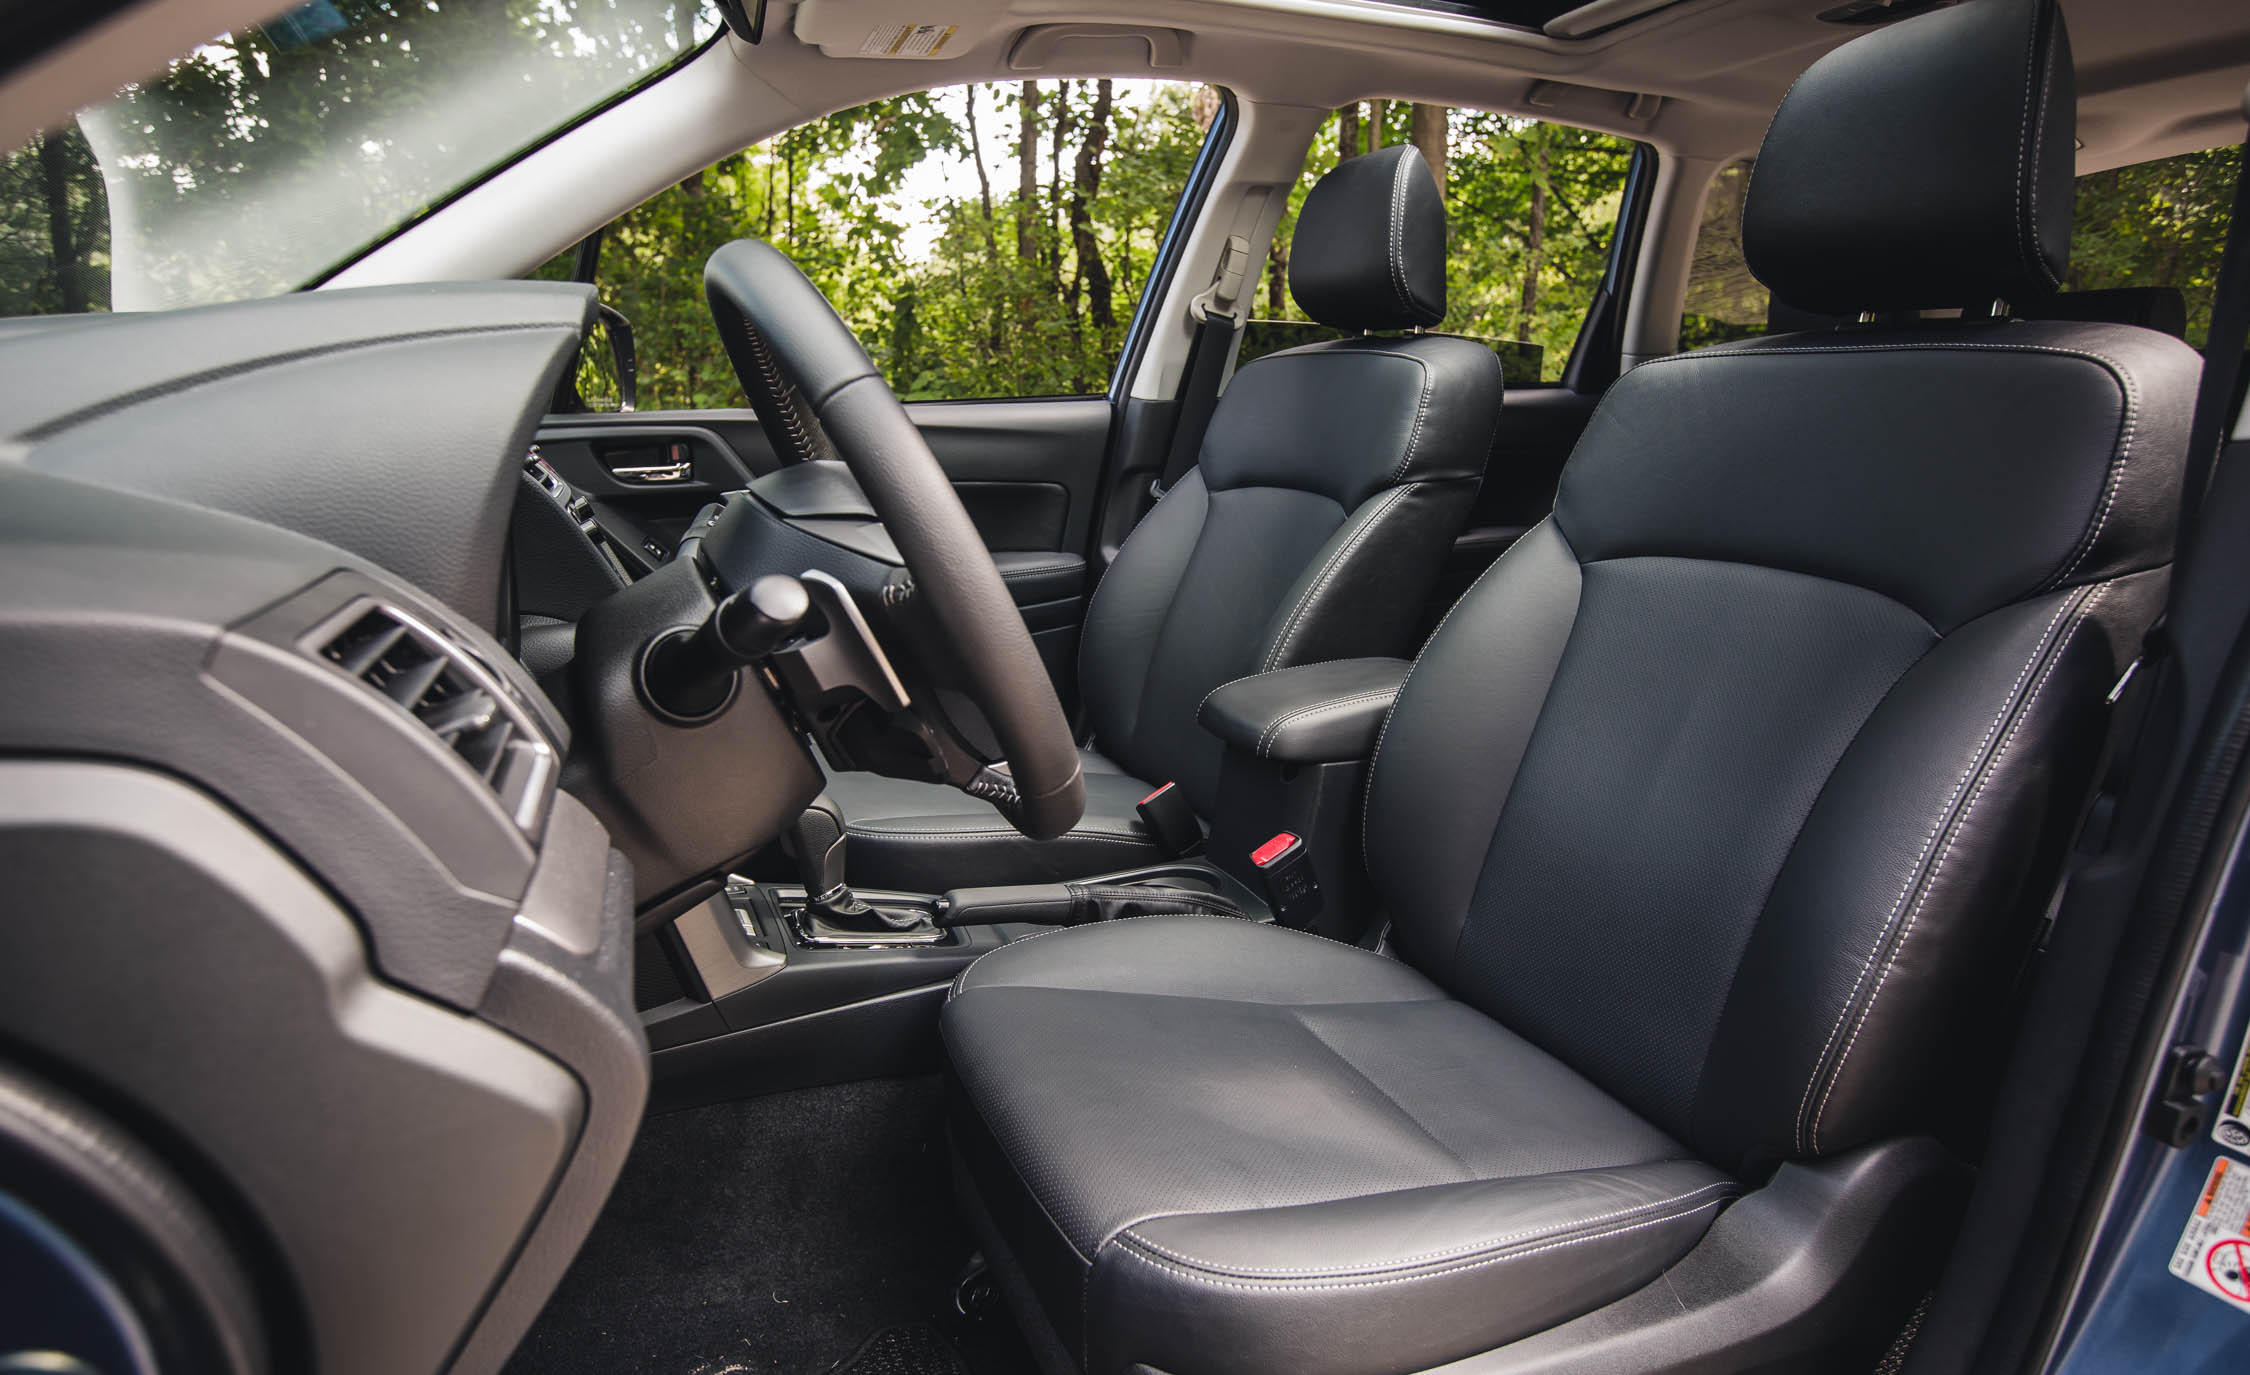 2016 Subaru Forester 2 0xt Touring Interior Seats Cockpit (View 12 of 29)